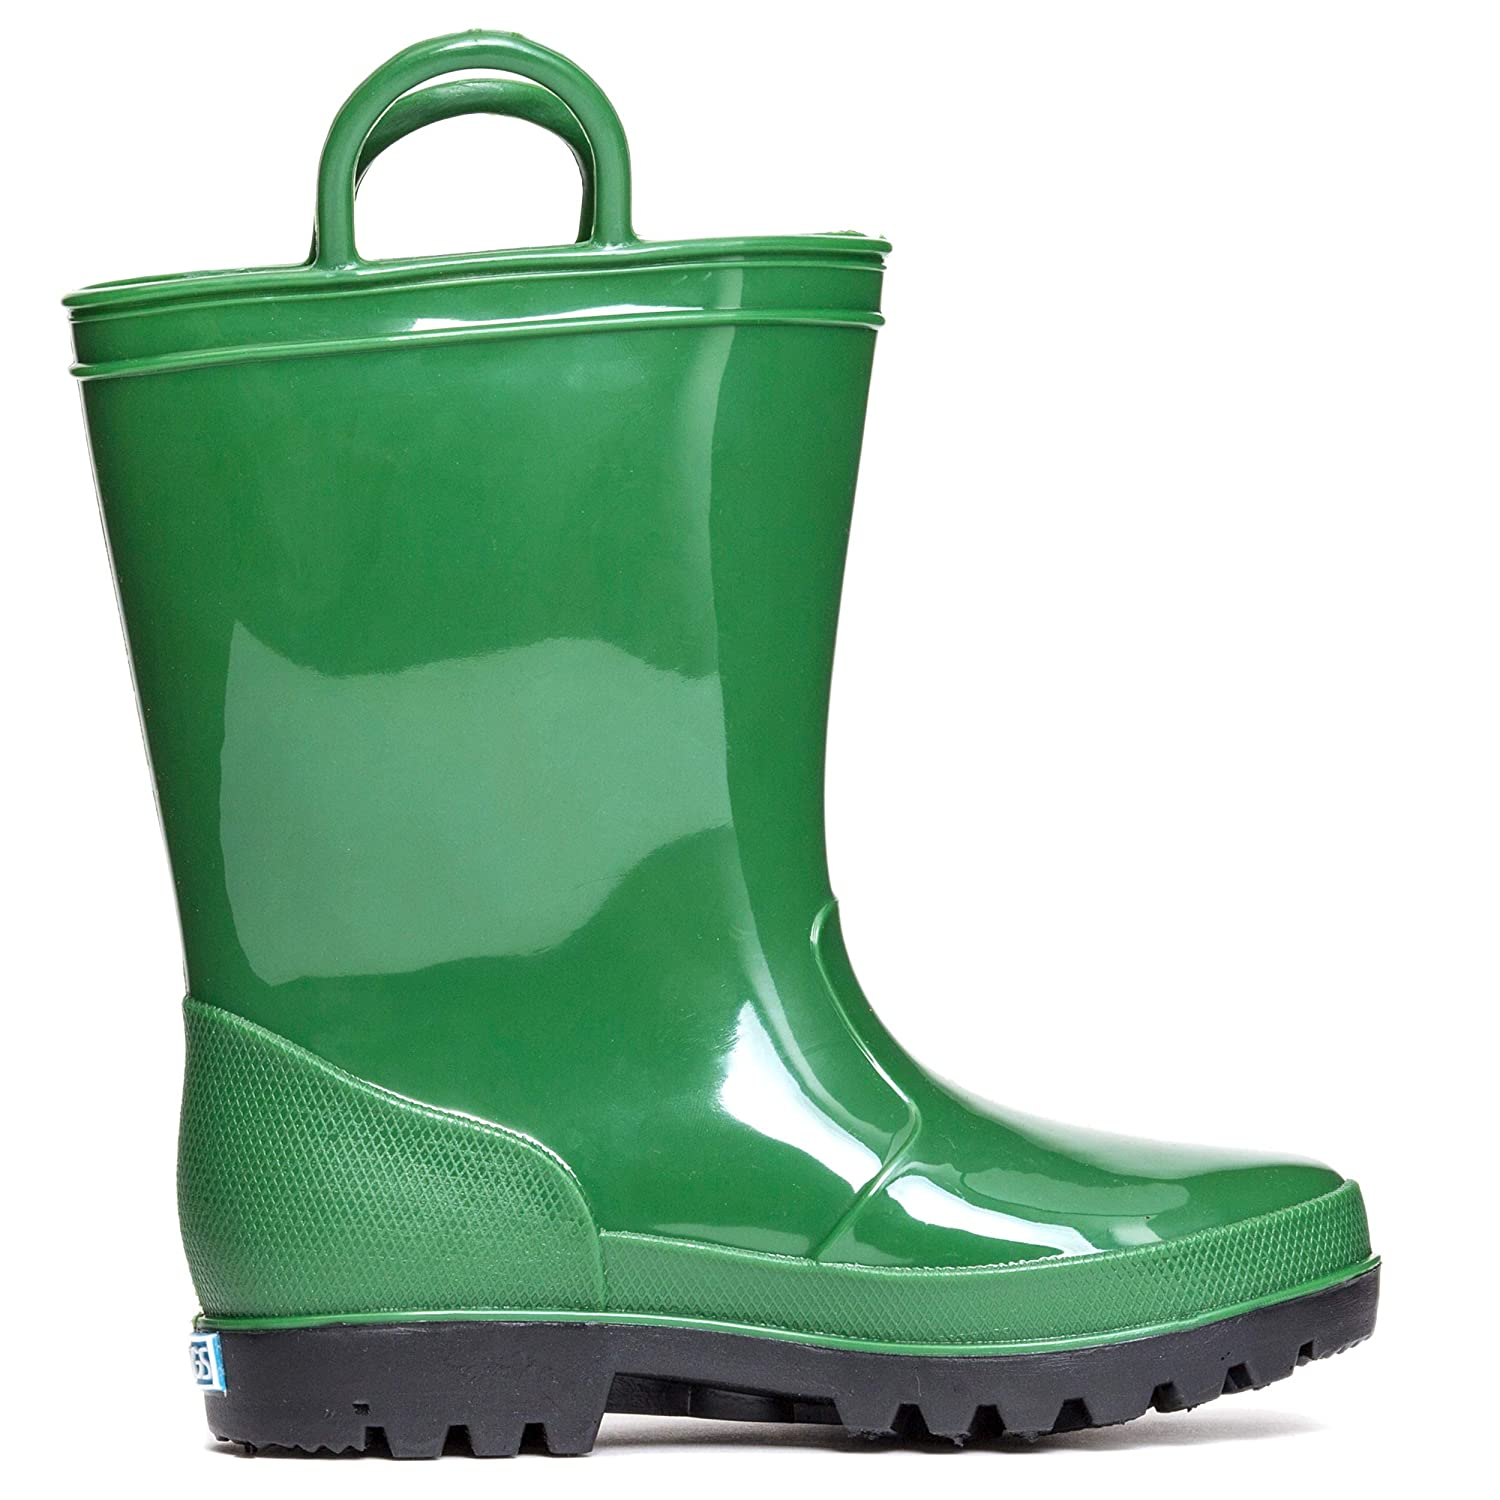 and Toddlers ZOOGS Kids Waterproof Rain Boots for Girls Boys